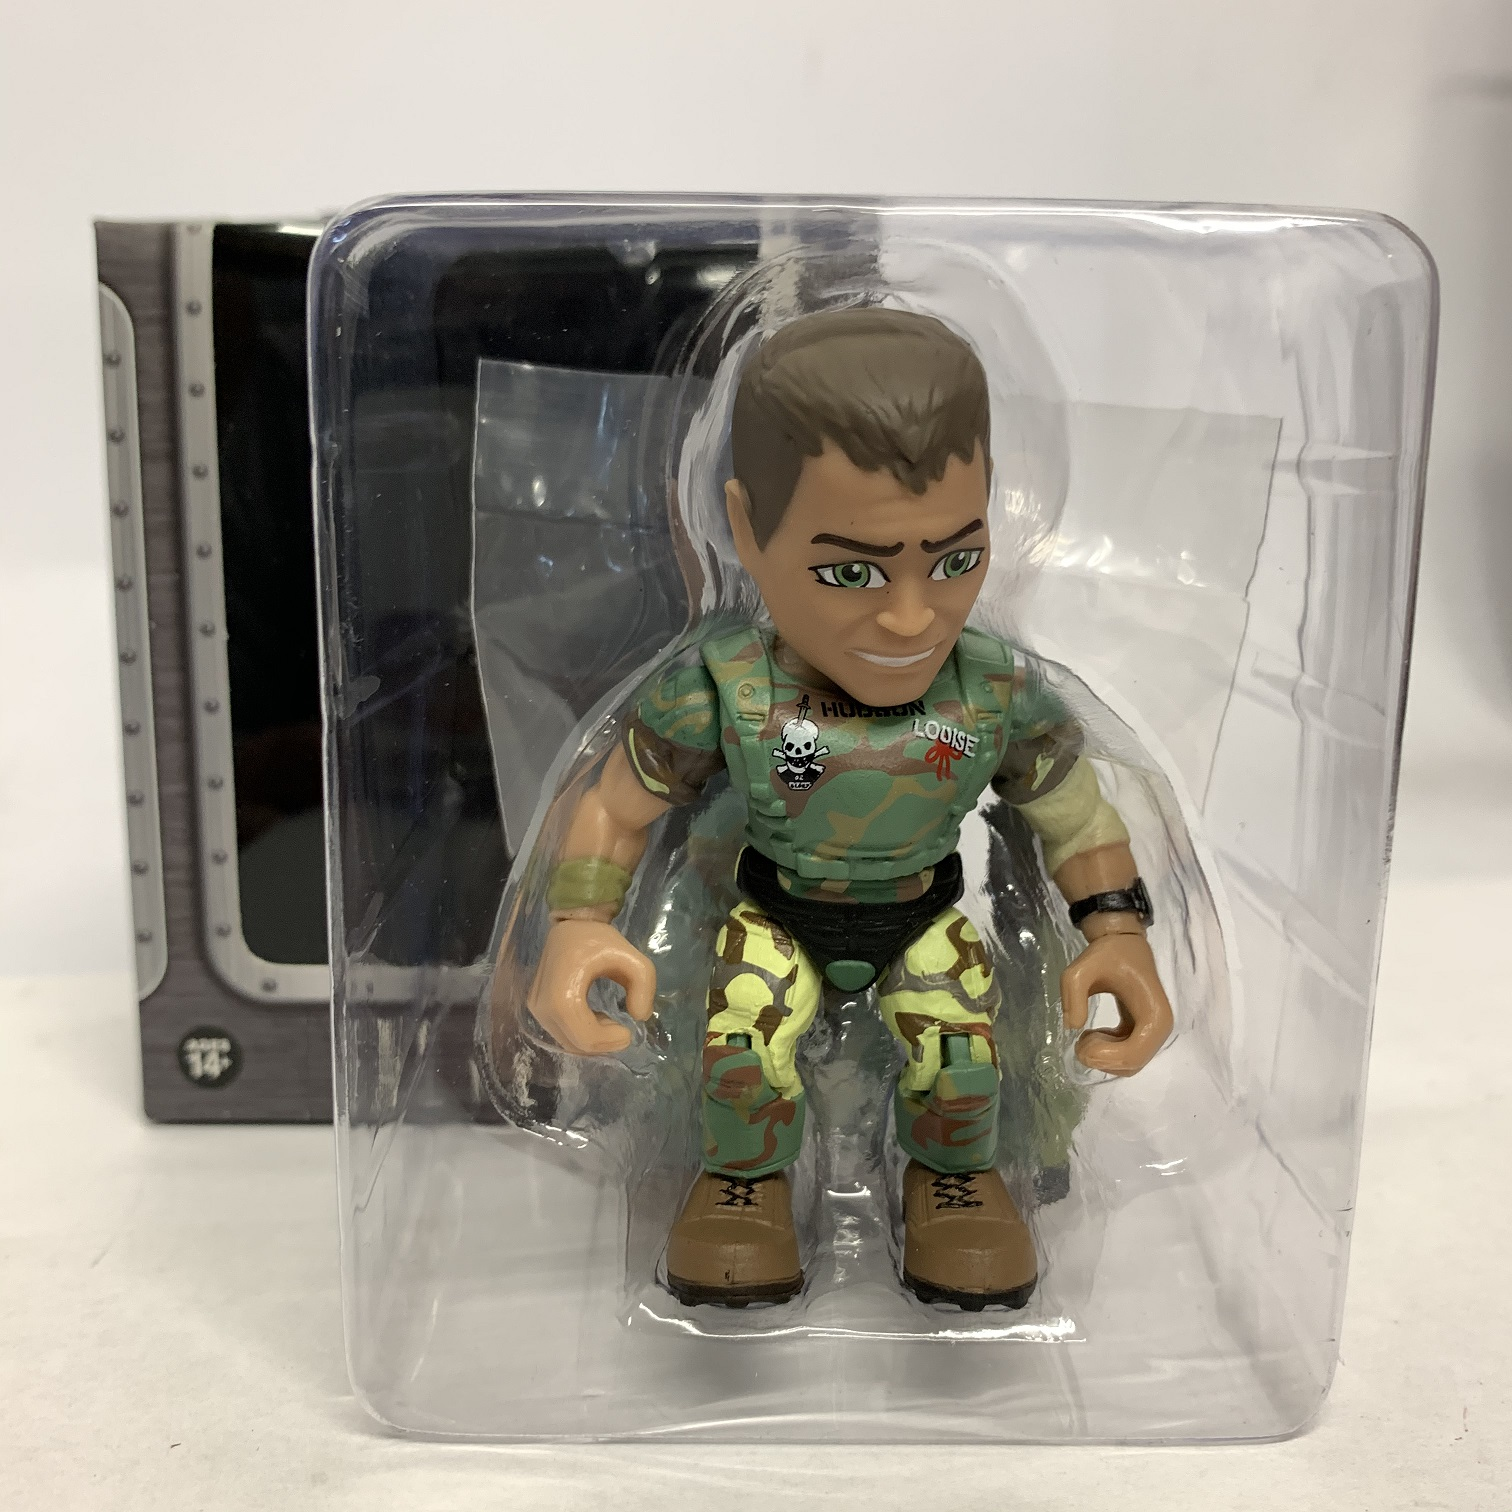 The Loyal Subjects ALIENS Action Vinyls WILLIAM HUDSON Figure